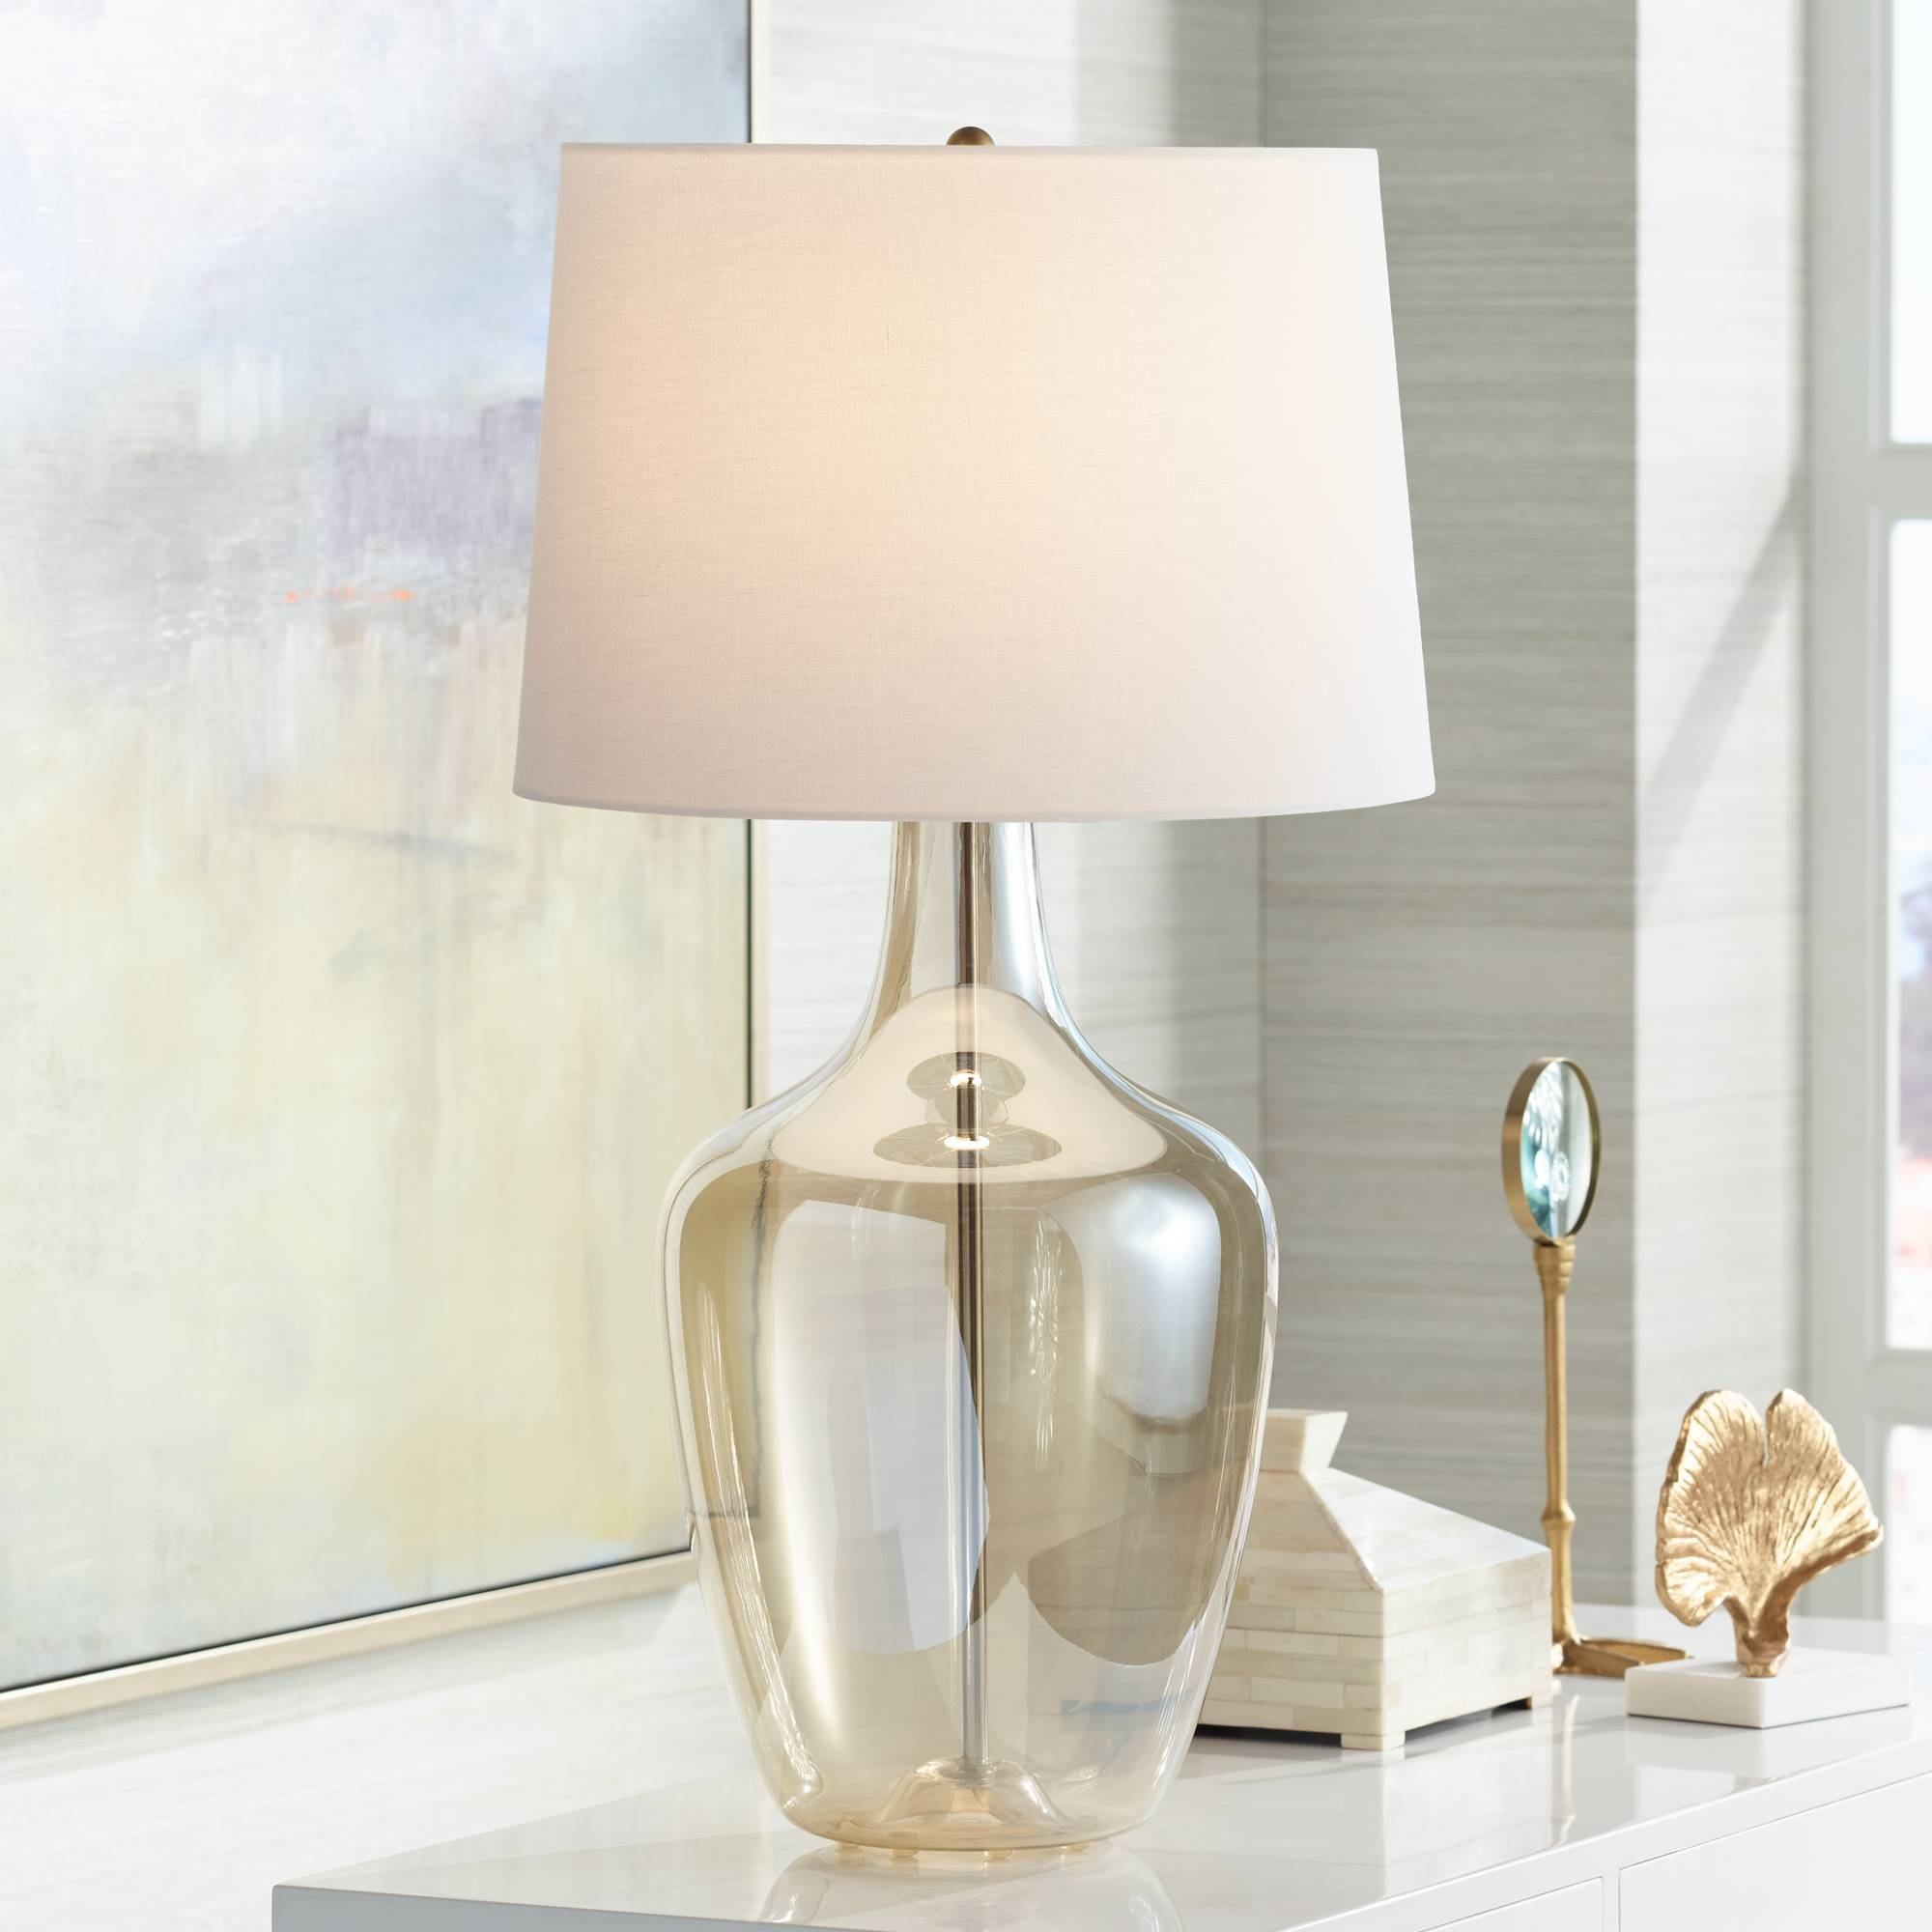 Details about Modern Table Lamp Clear Champagne Glass Jar for Living Room  Family Bedroom